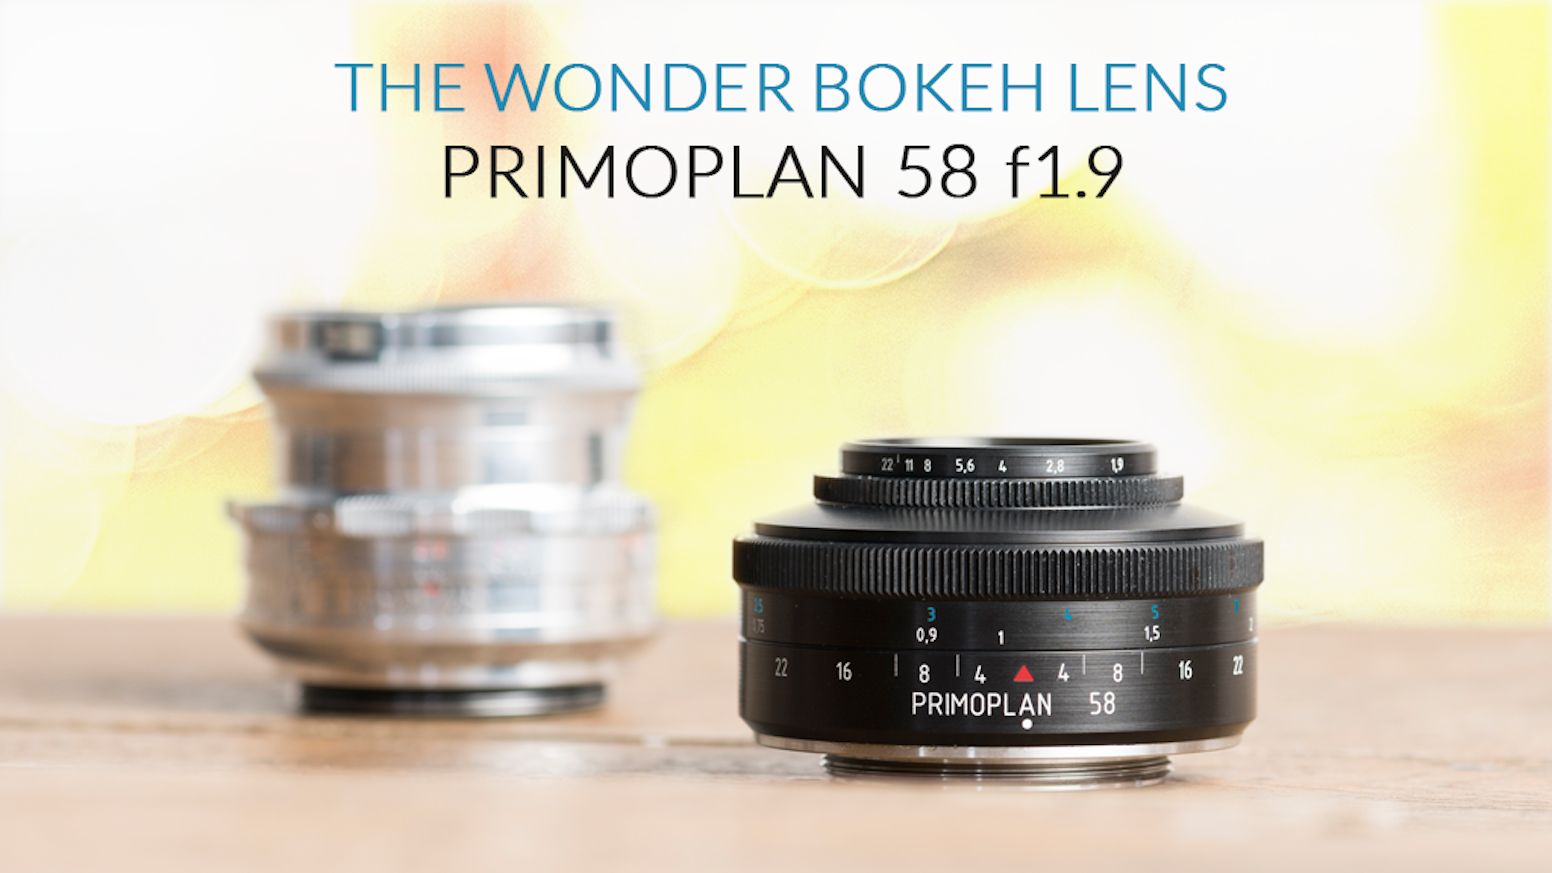 From melting, swirling bubbles to soft and creamy bokeh, yet astonishing sharpness: Discover all those facets in one true art lens